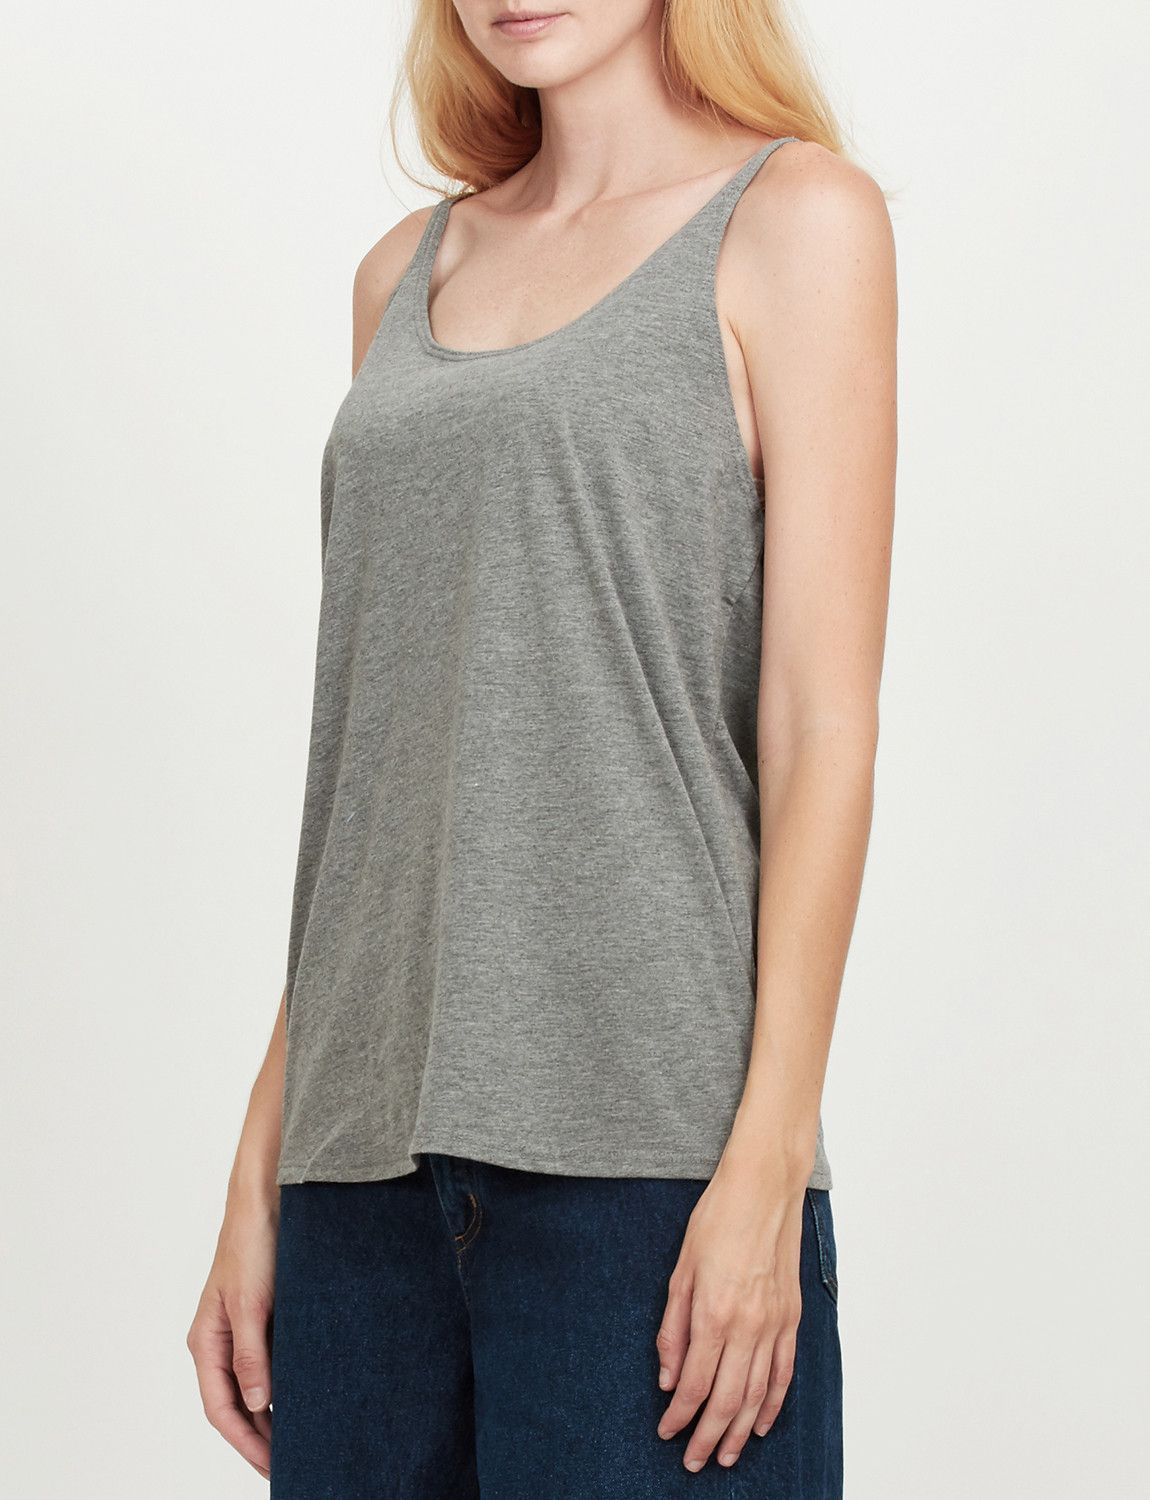 39ea5db0d7a3ba Your favorite tank top just got better! This basic scoop neck loose fit  tank top